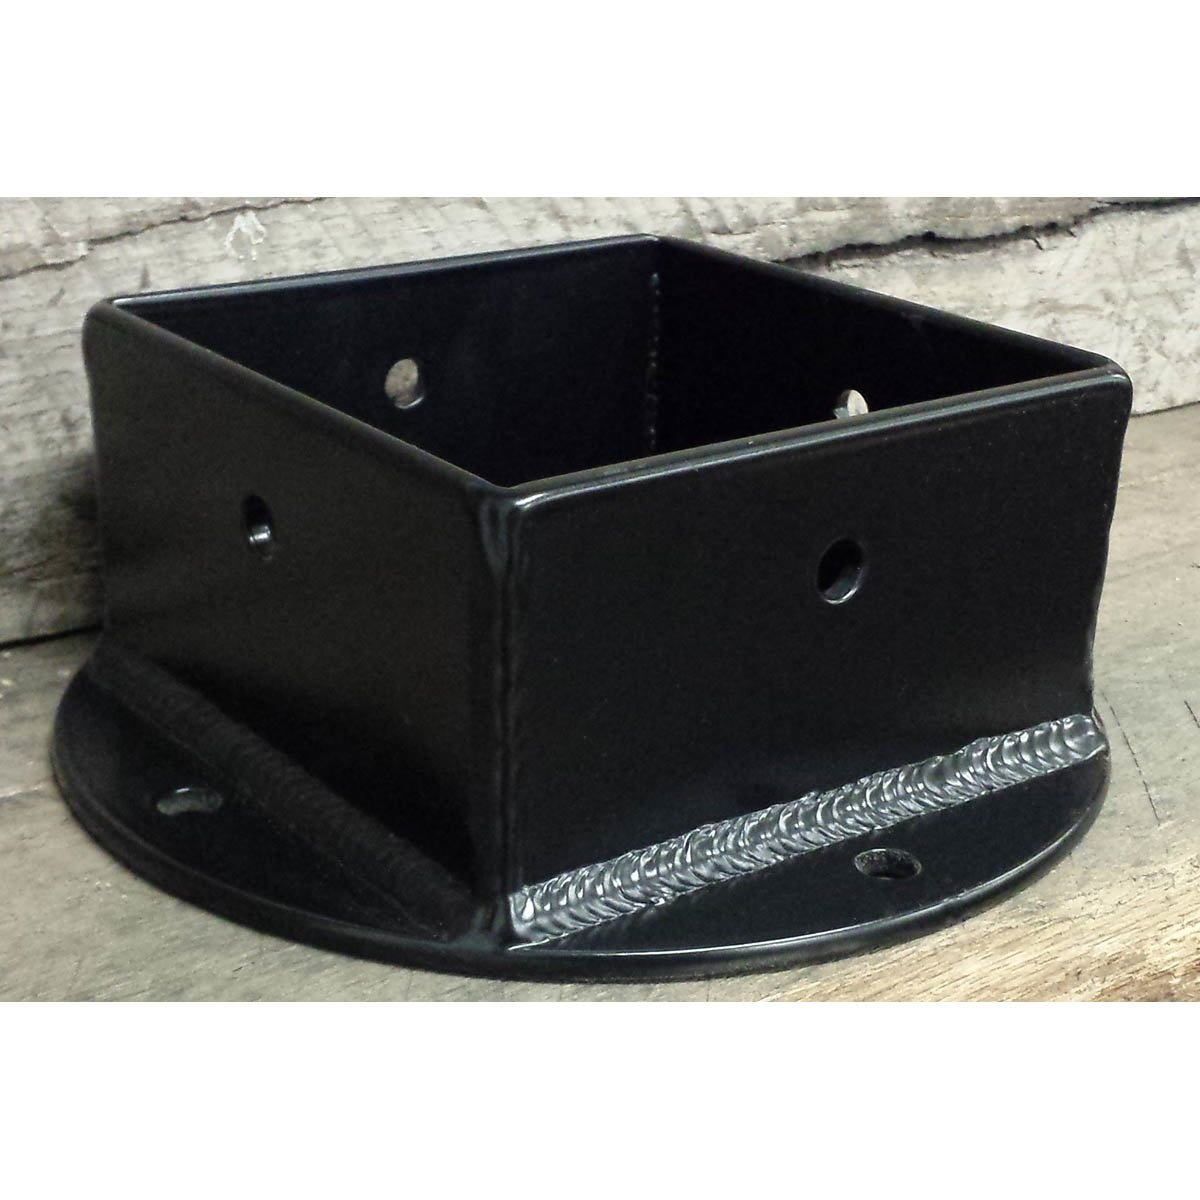 4 - Sided Timber Post Brackets with Black Powder Coat